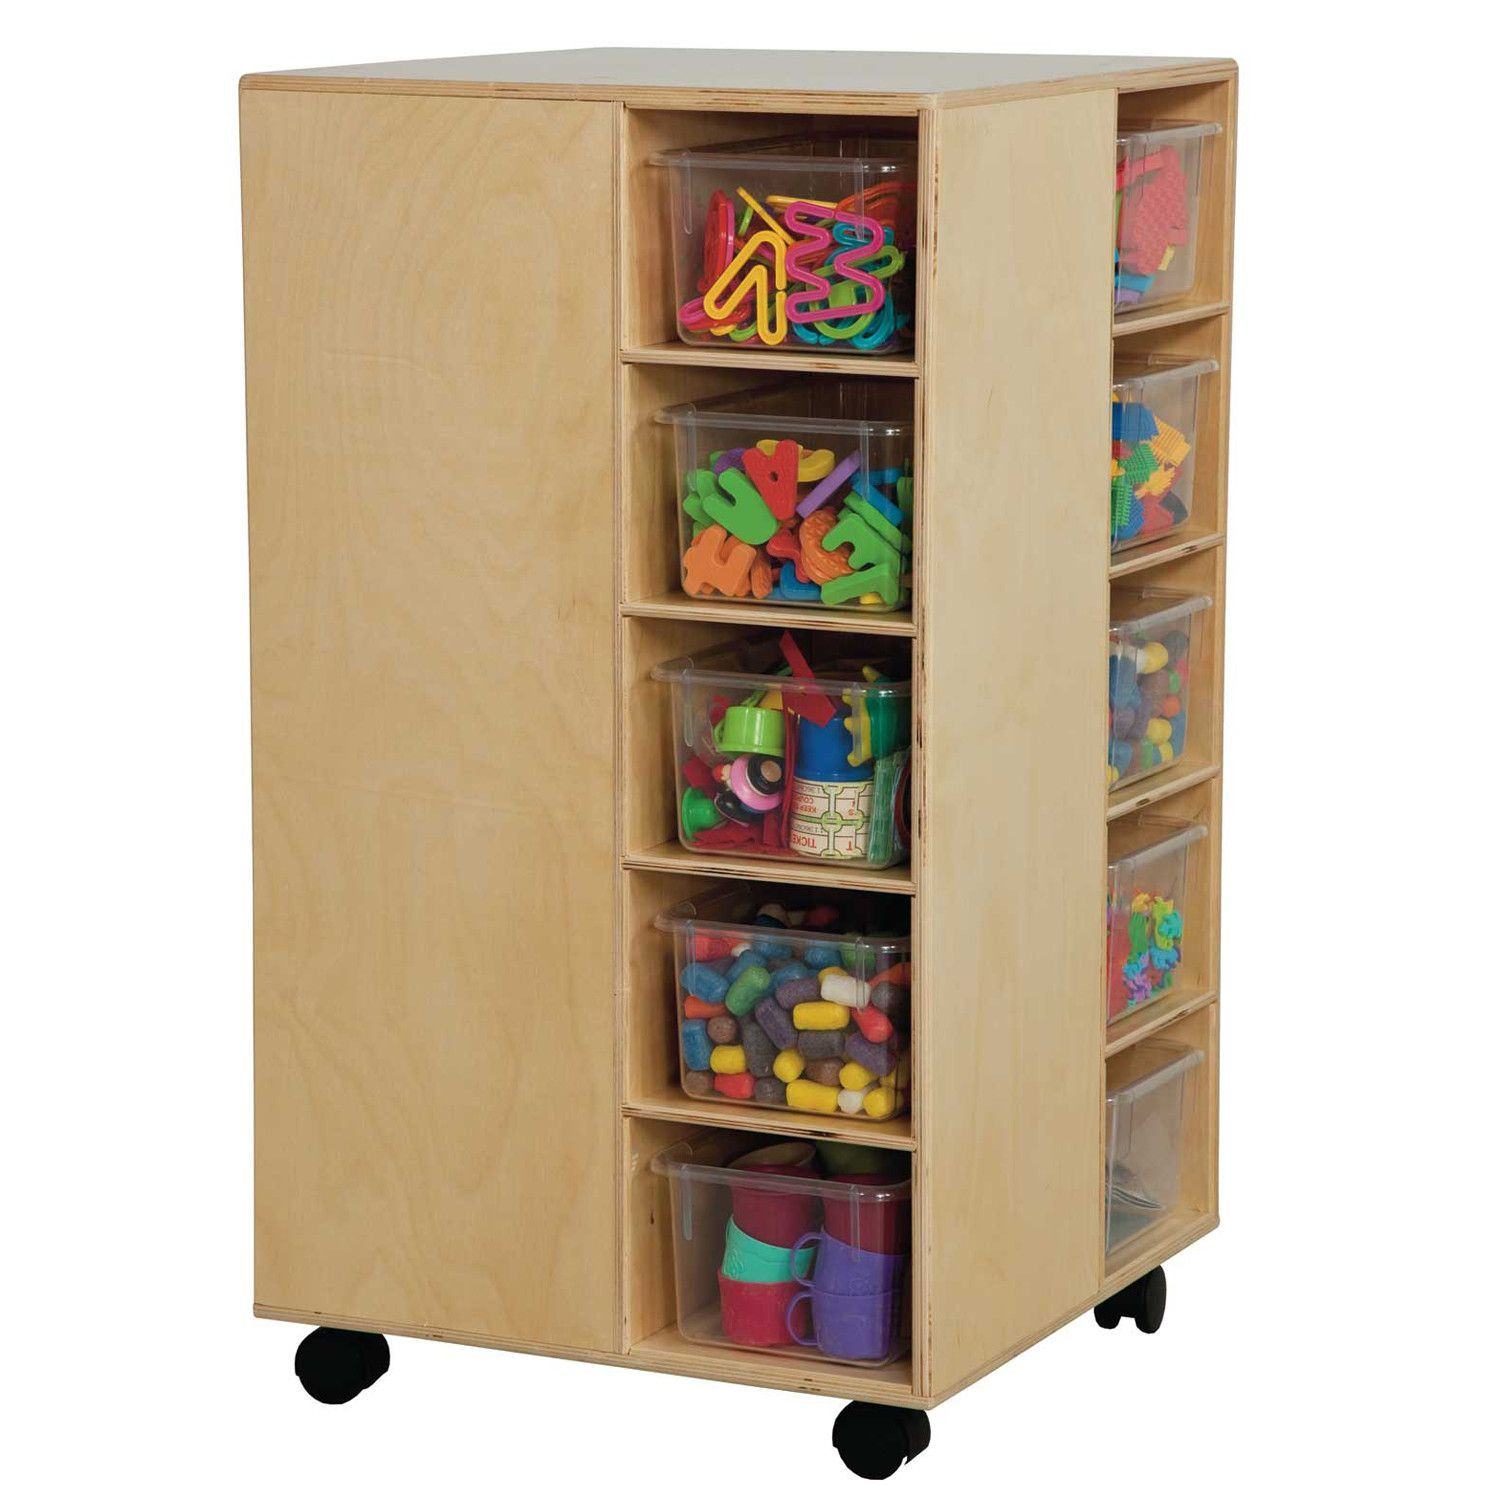 Space Saver 20 partment Cubby Products Pinterest